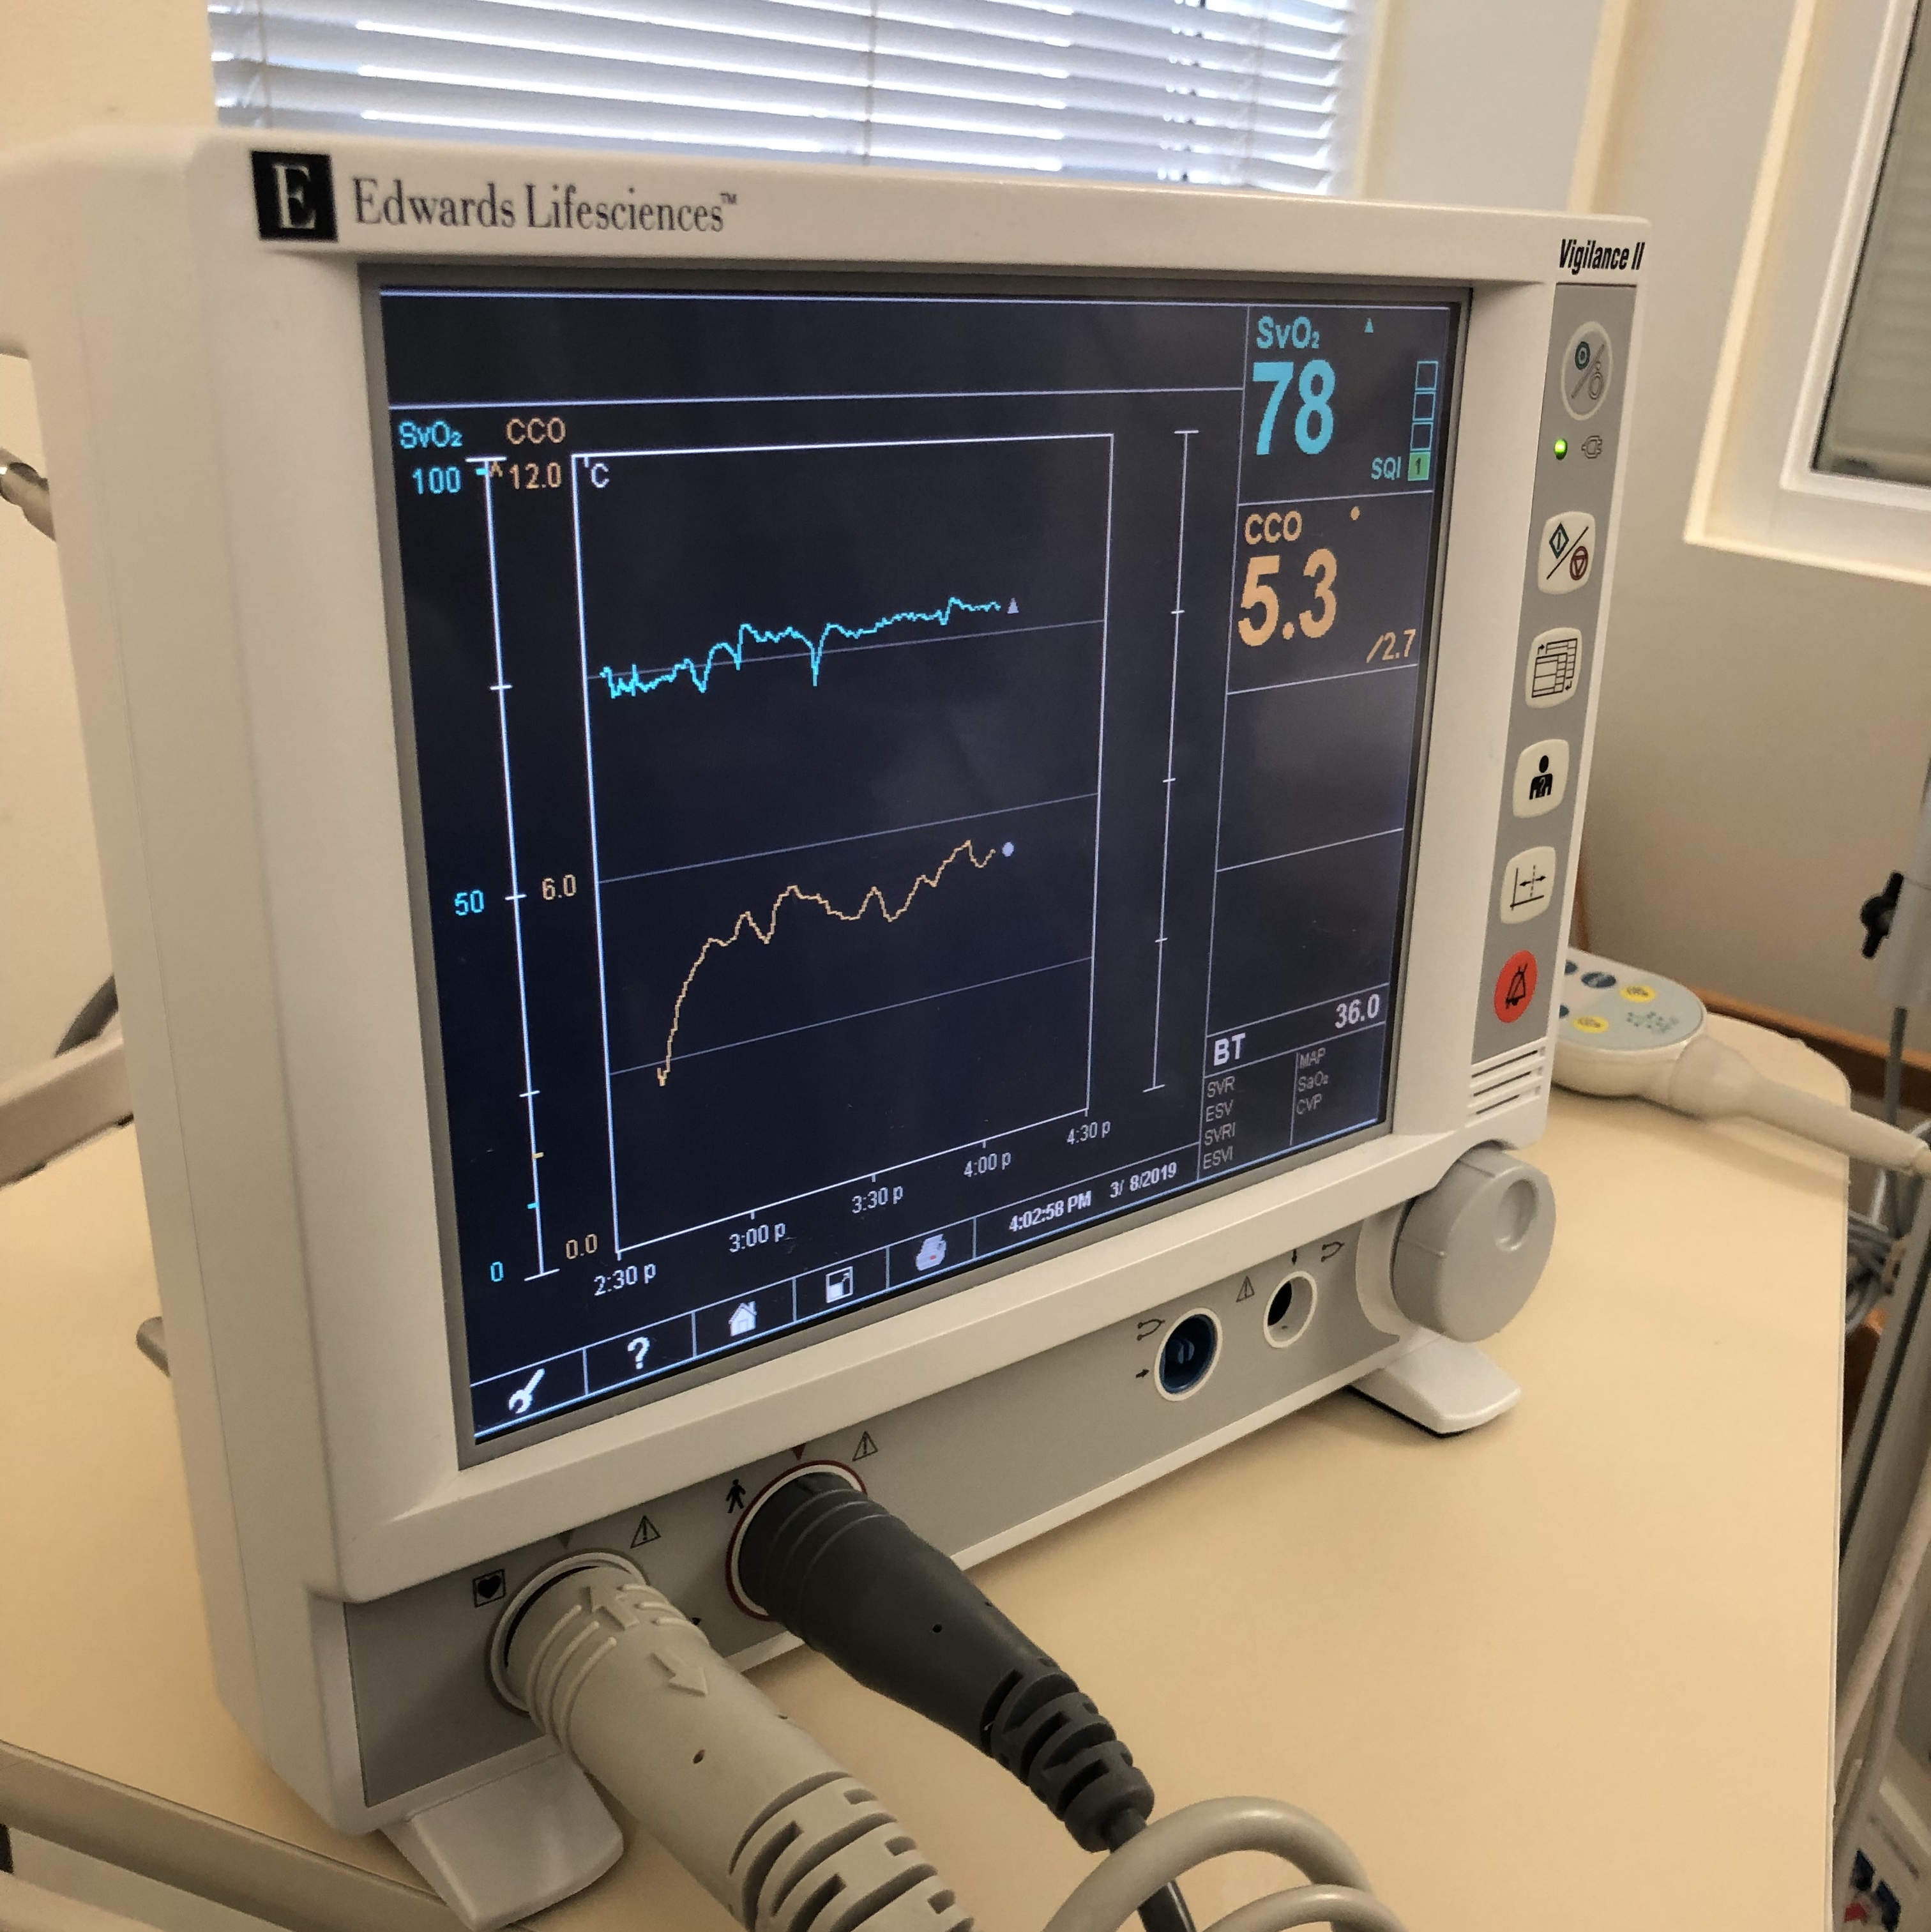 Monitor showing mixed venous oxygen saturation value (SvO2) in blue and cardiac output (CO) value in orange